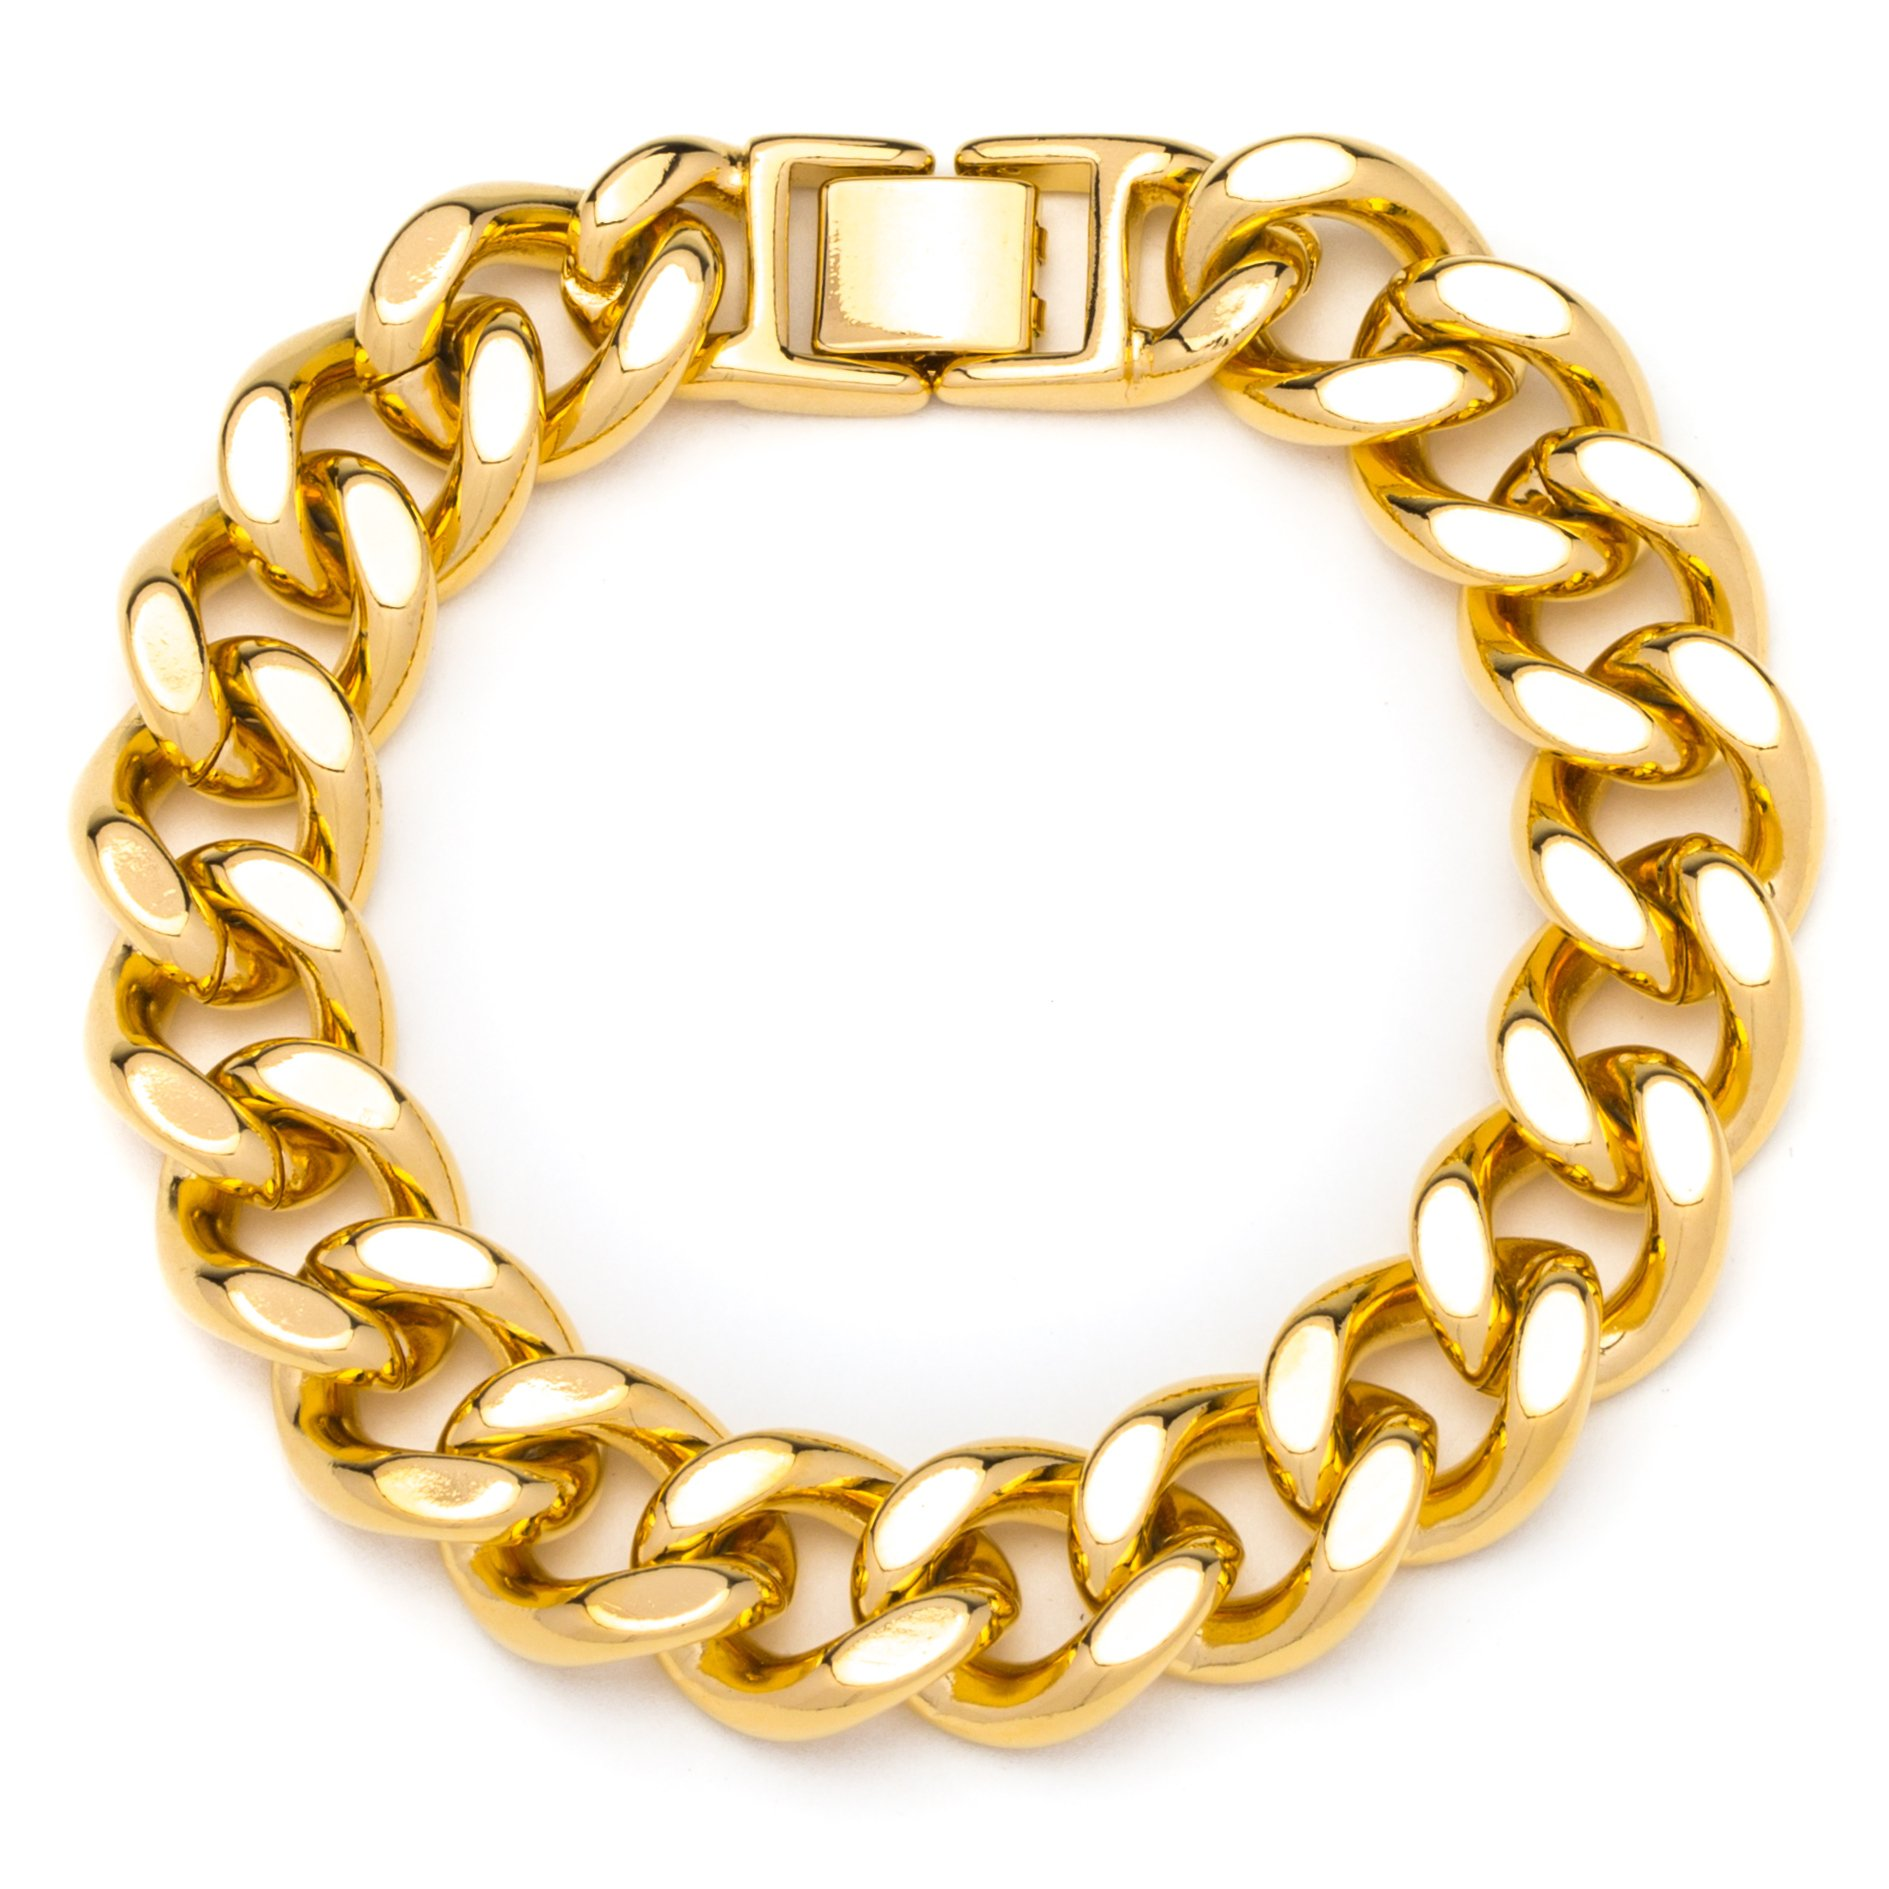 Lifetime Jewelry Thick Cuban Link Bracelet 15MM, Round, 24K Gold Over Semi-Precious Metals, Premium Fashion Jewelry, 9 Inches